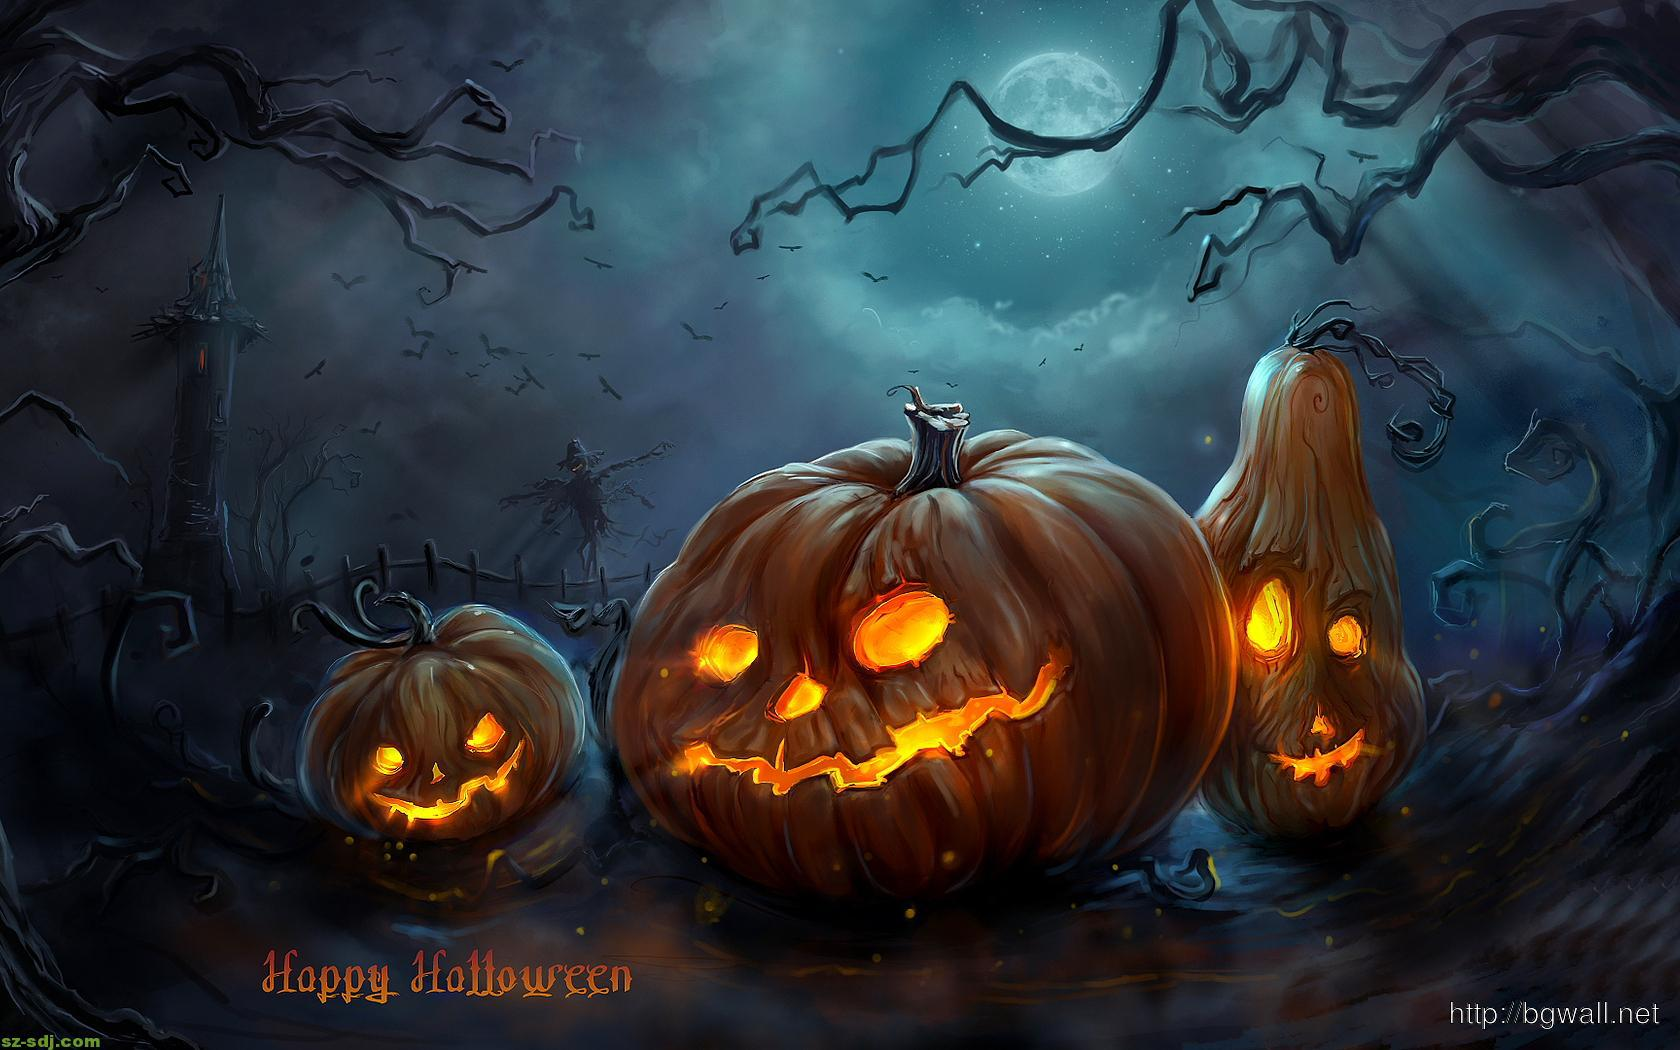 Beautiful Wallpaper High Resolution Halloween - halloween-wallpaper-high-resolution  Snapshot_5206.jpg